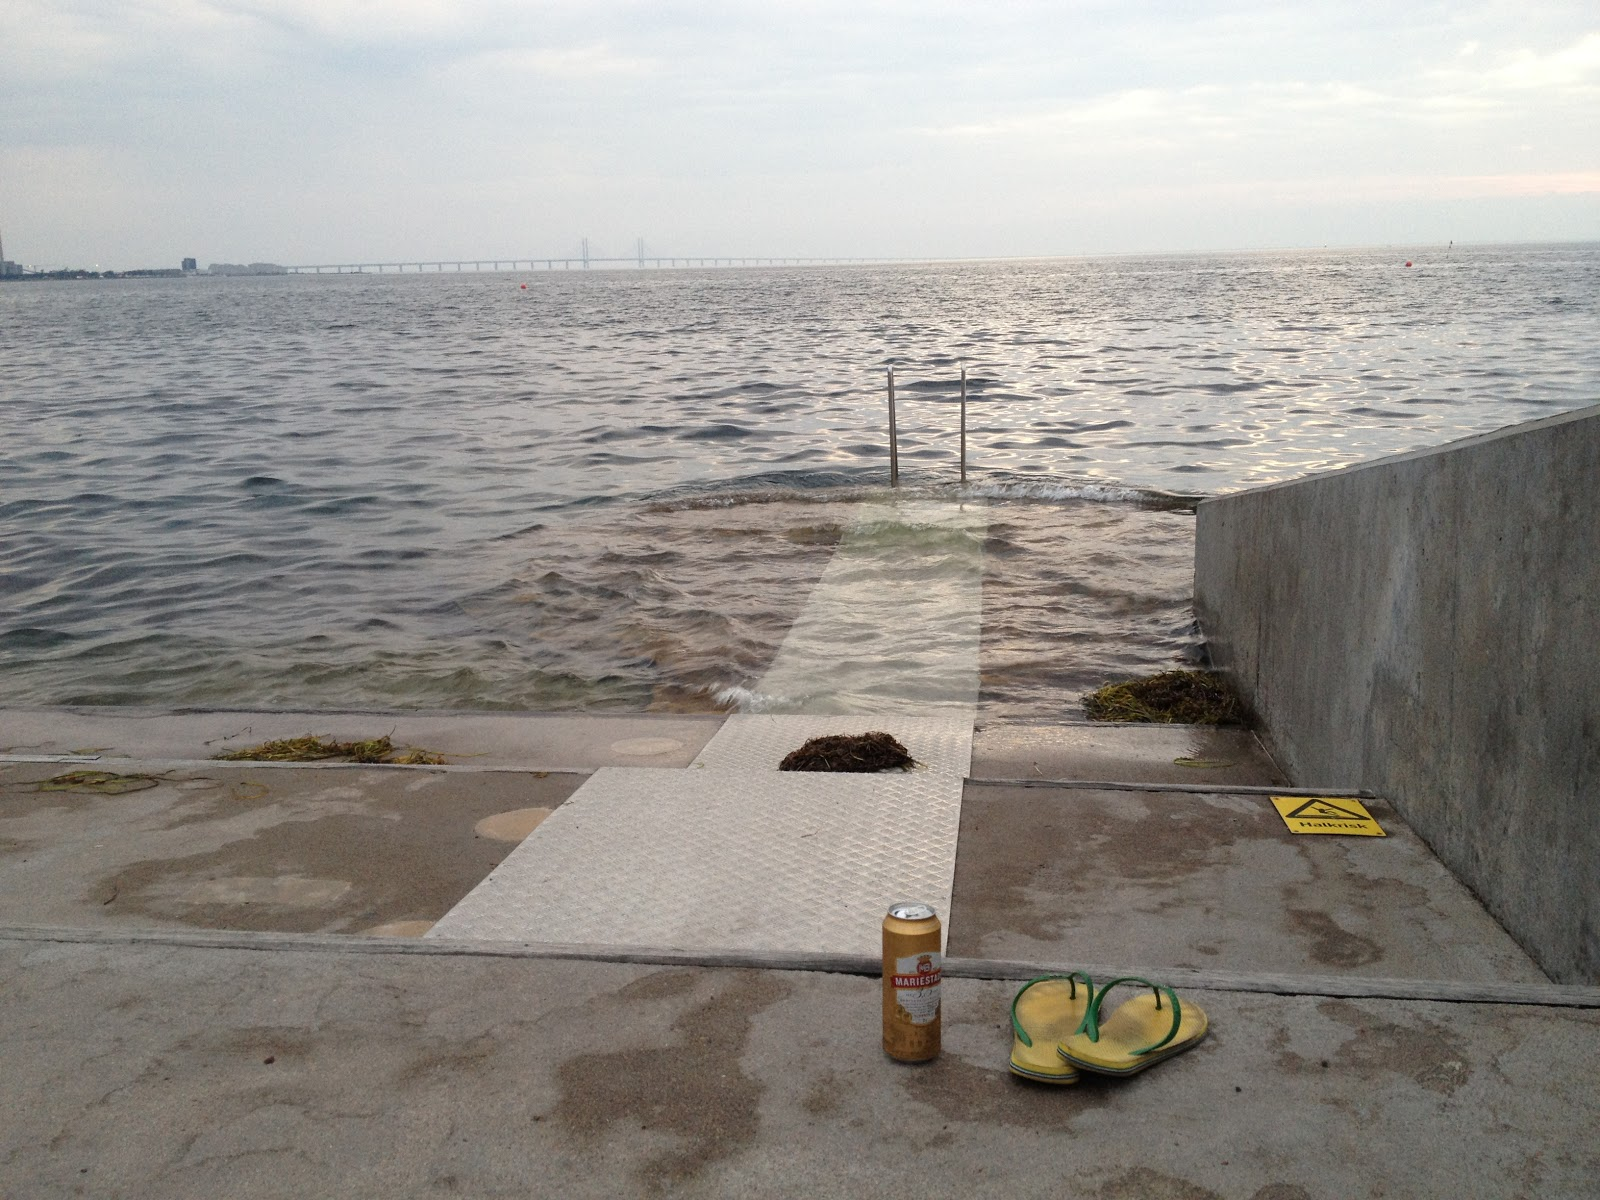 beer, flip flops, and the Oresund Strait